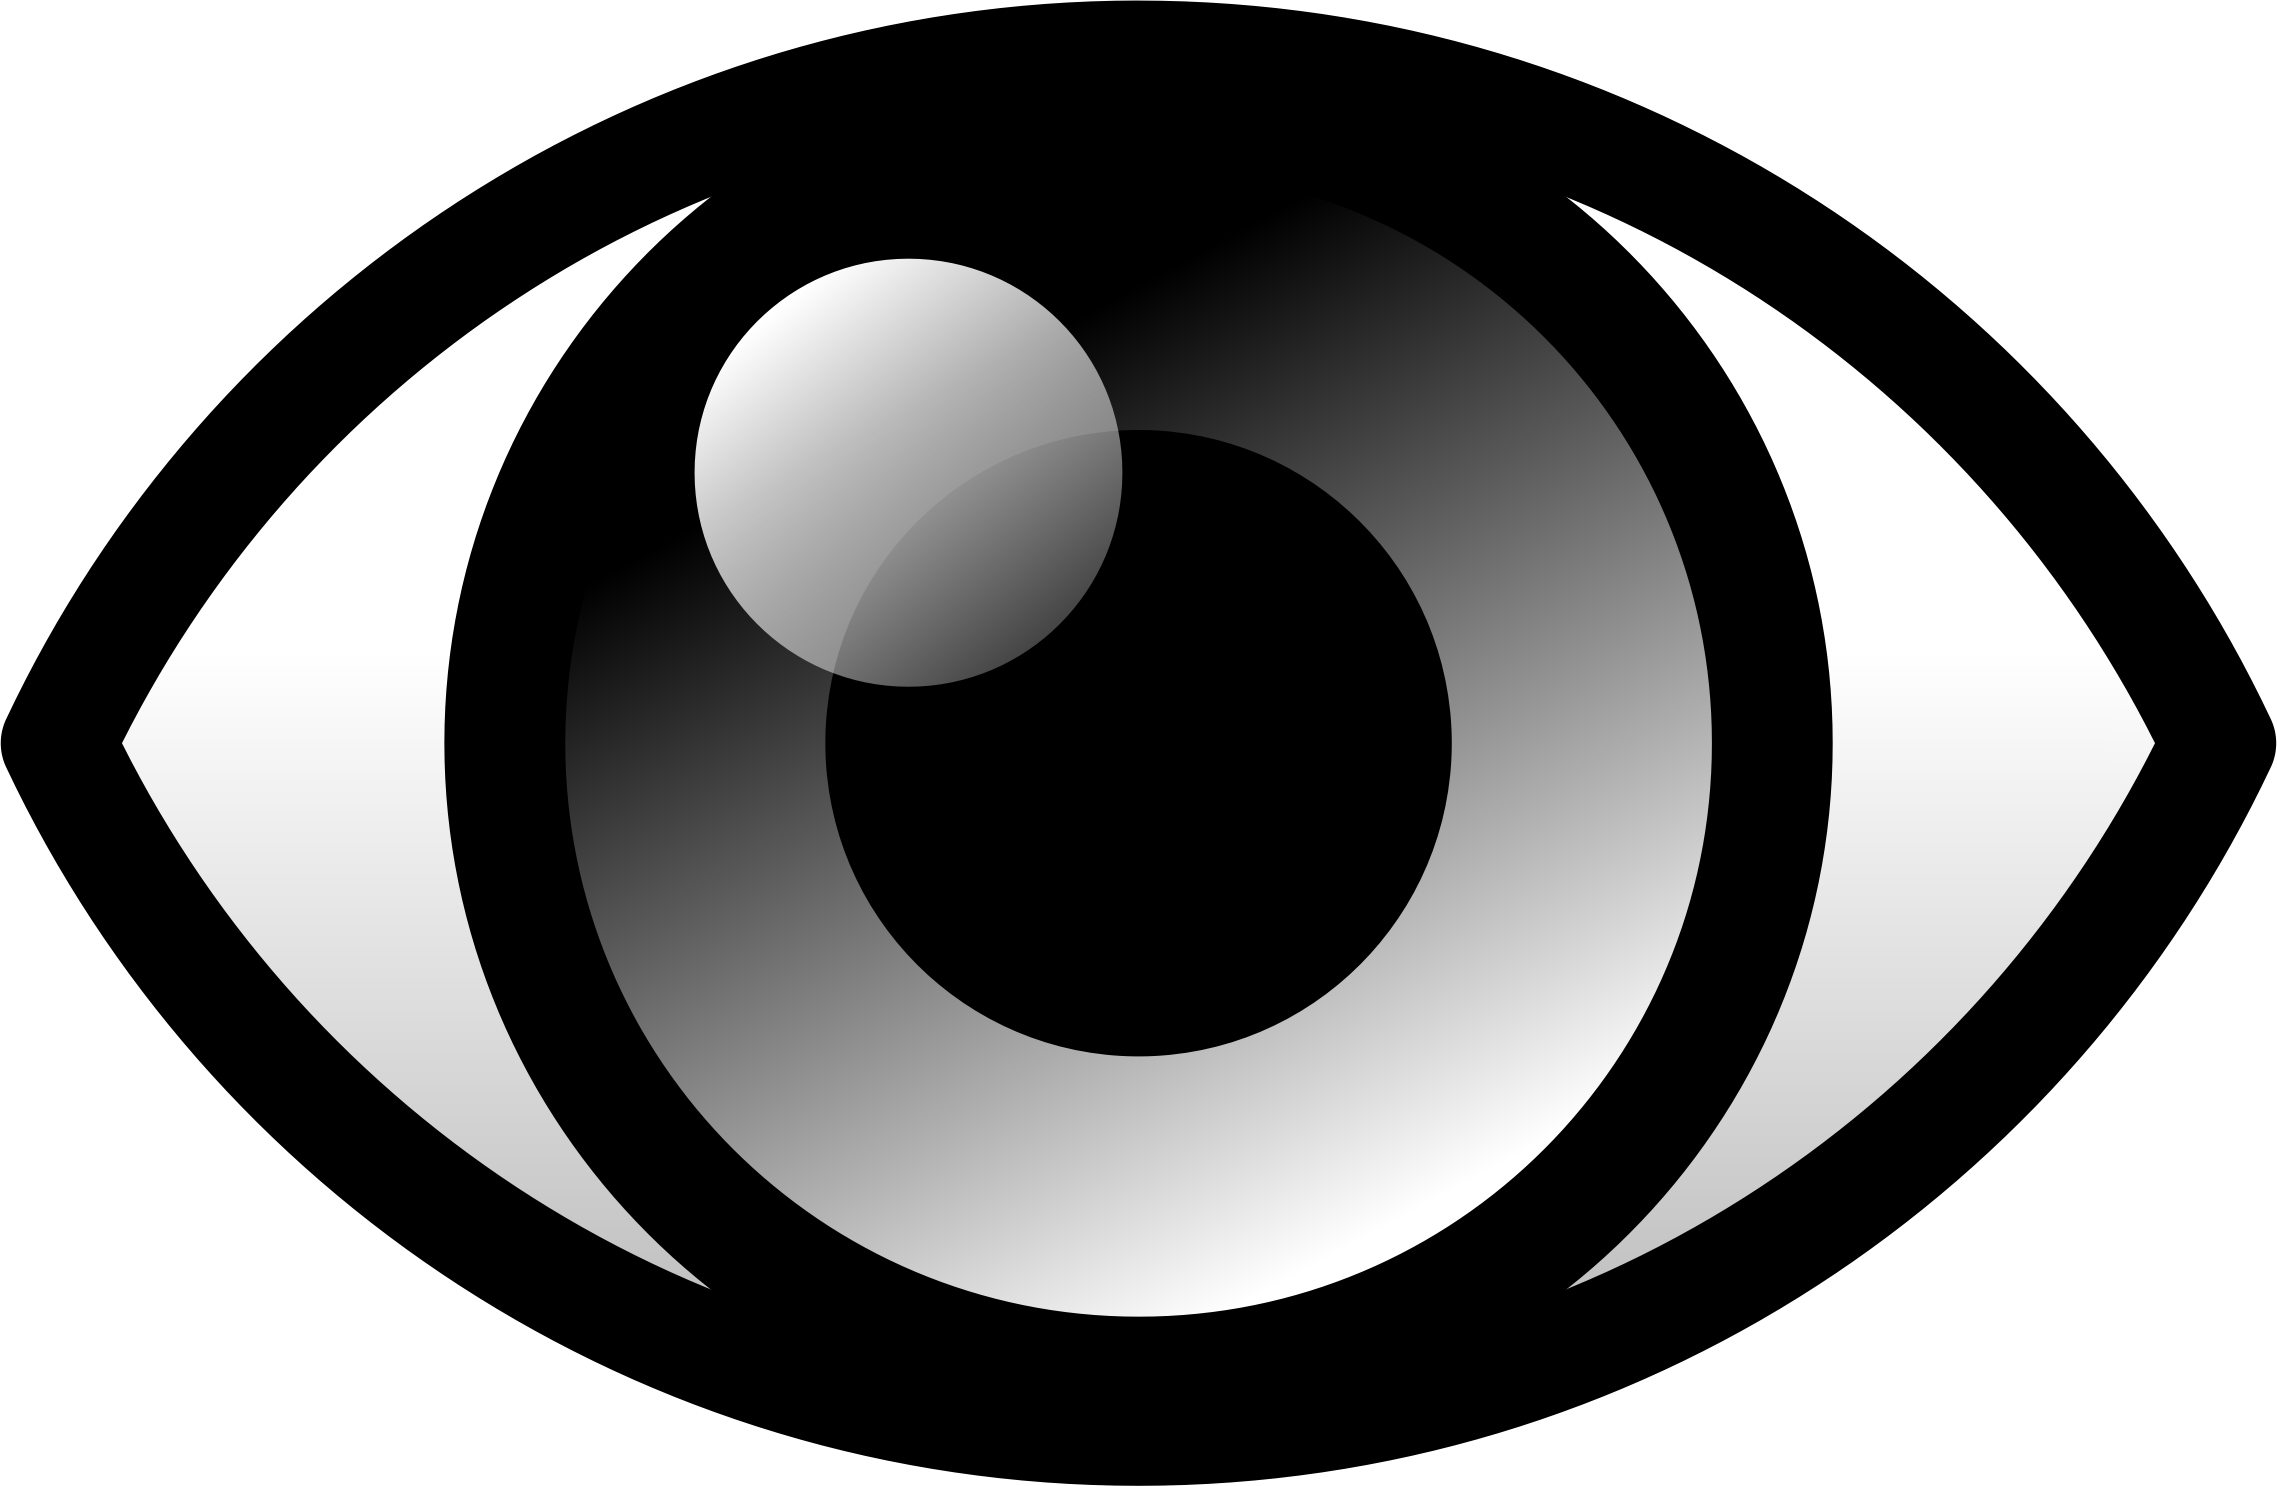 Eye icon by Justin Ternet